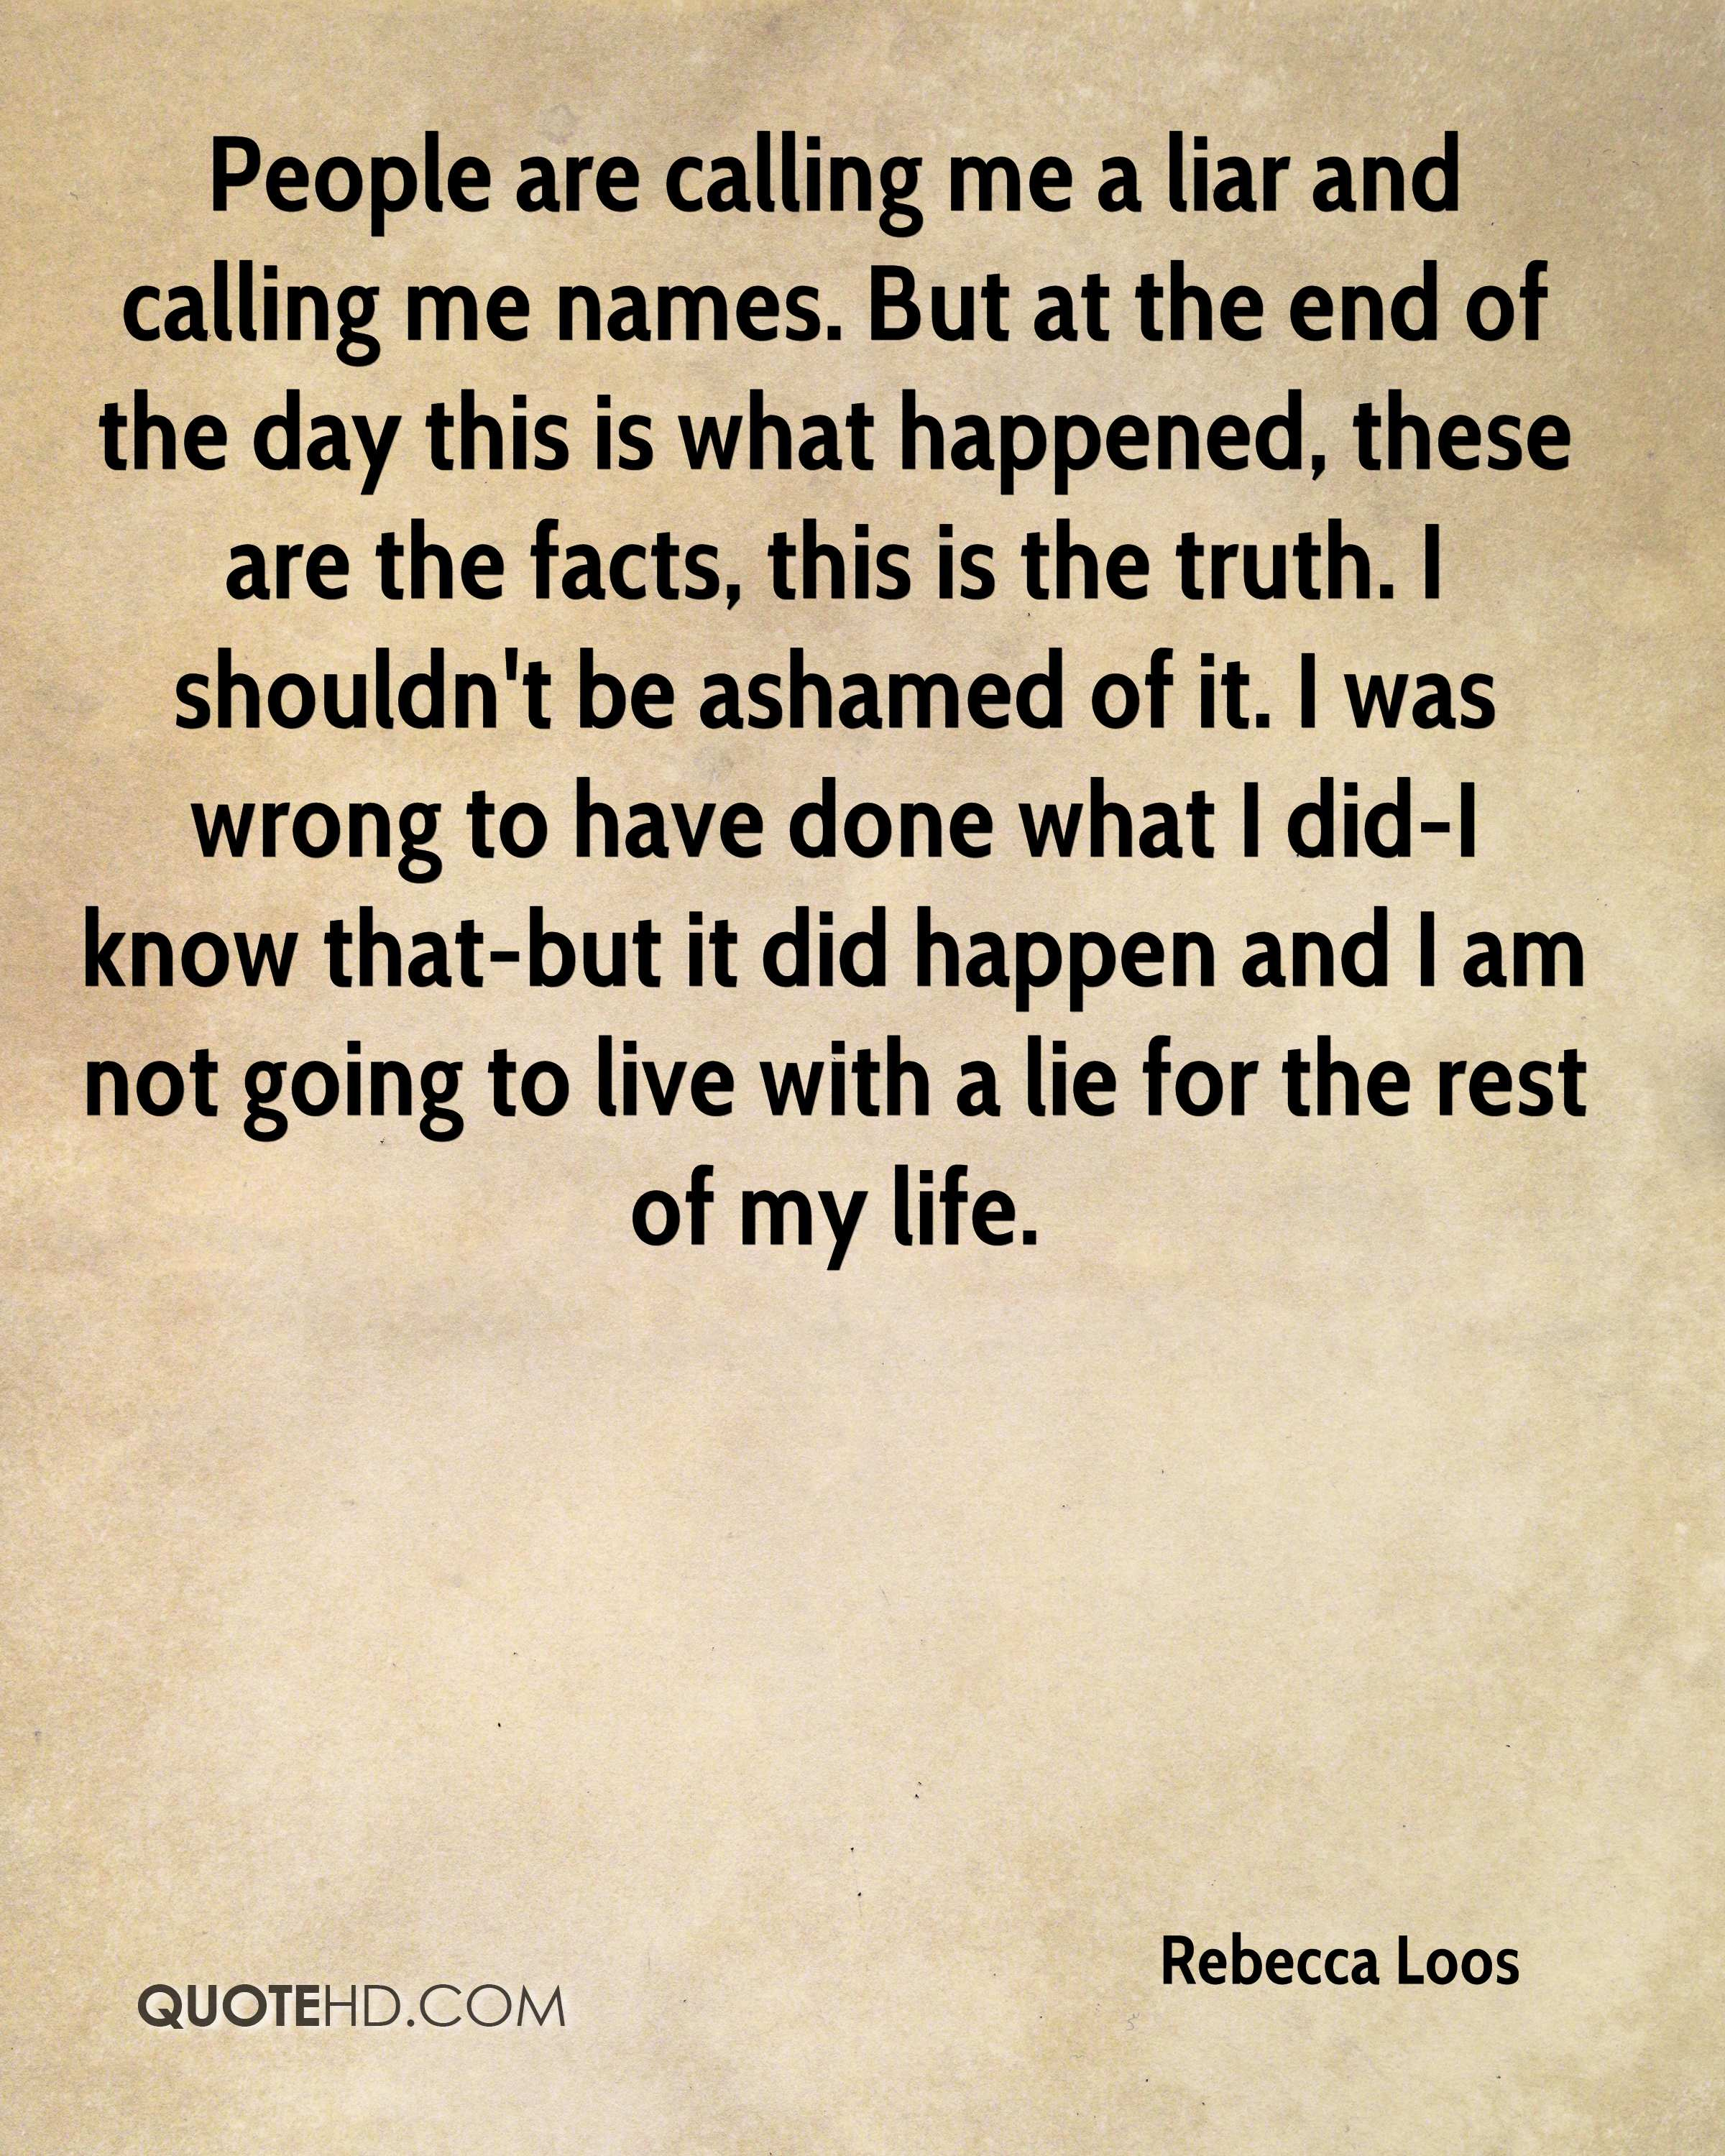 The Truth Of Life Quotes Rebecca Loos Life Quotes  Quotehd